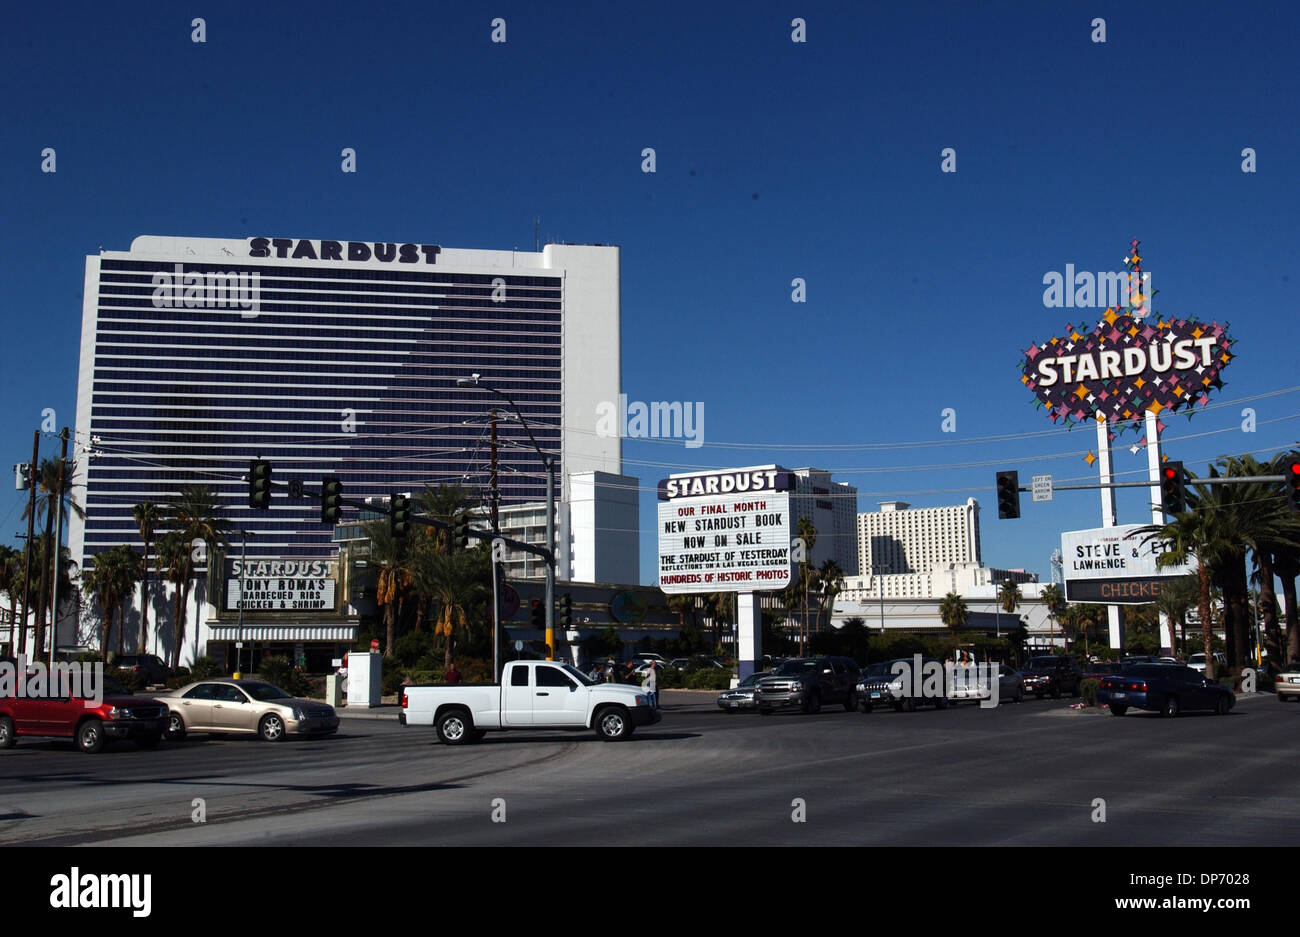 Stardust hotel and casino closing tohono o odham casino